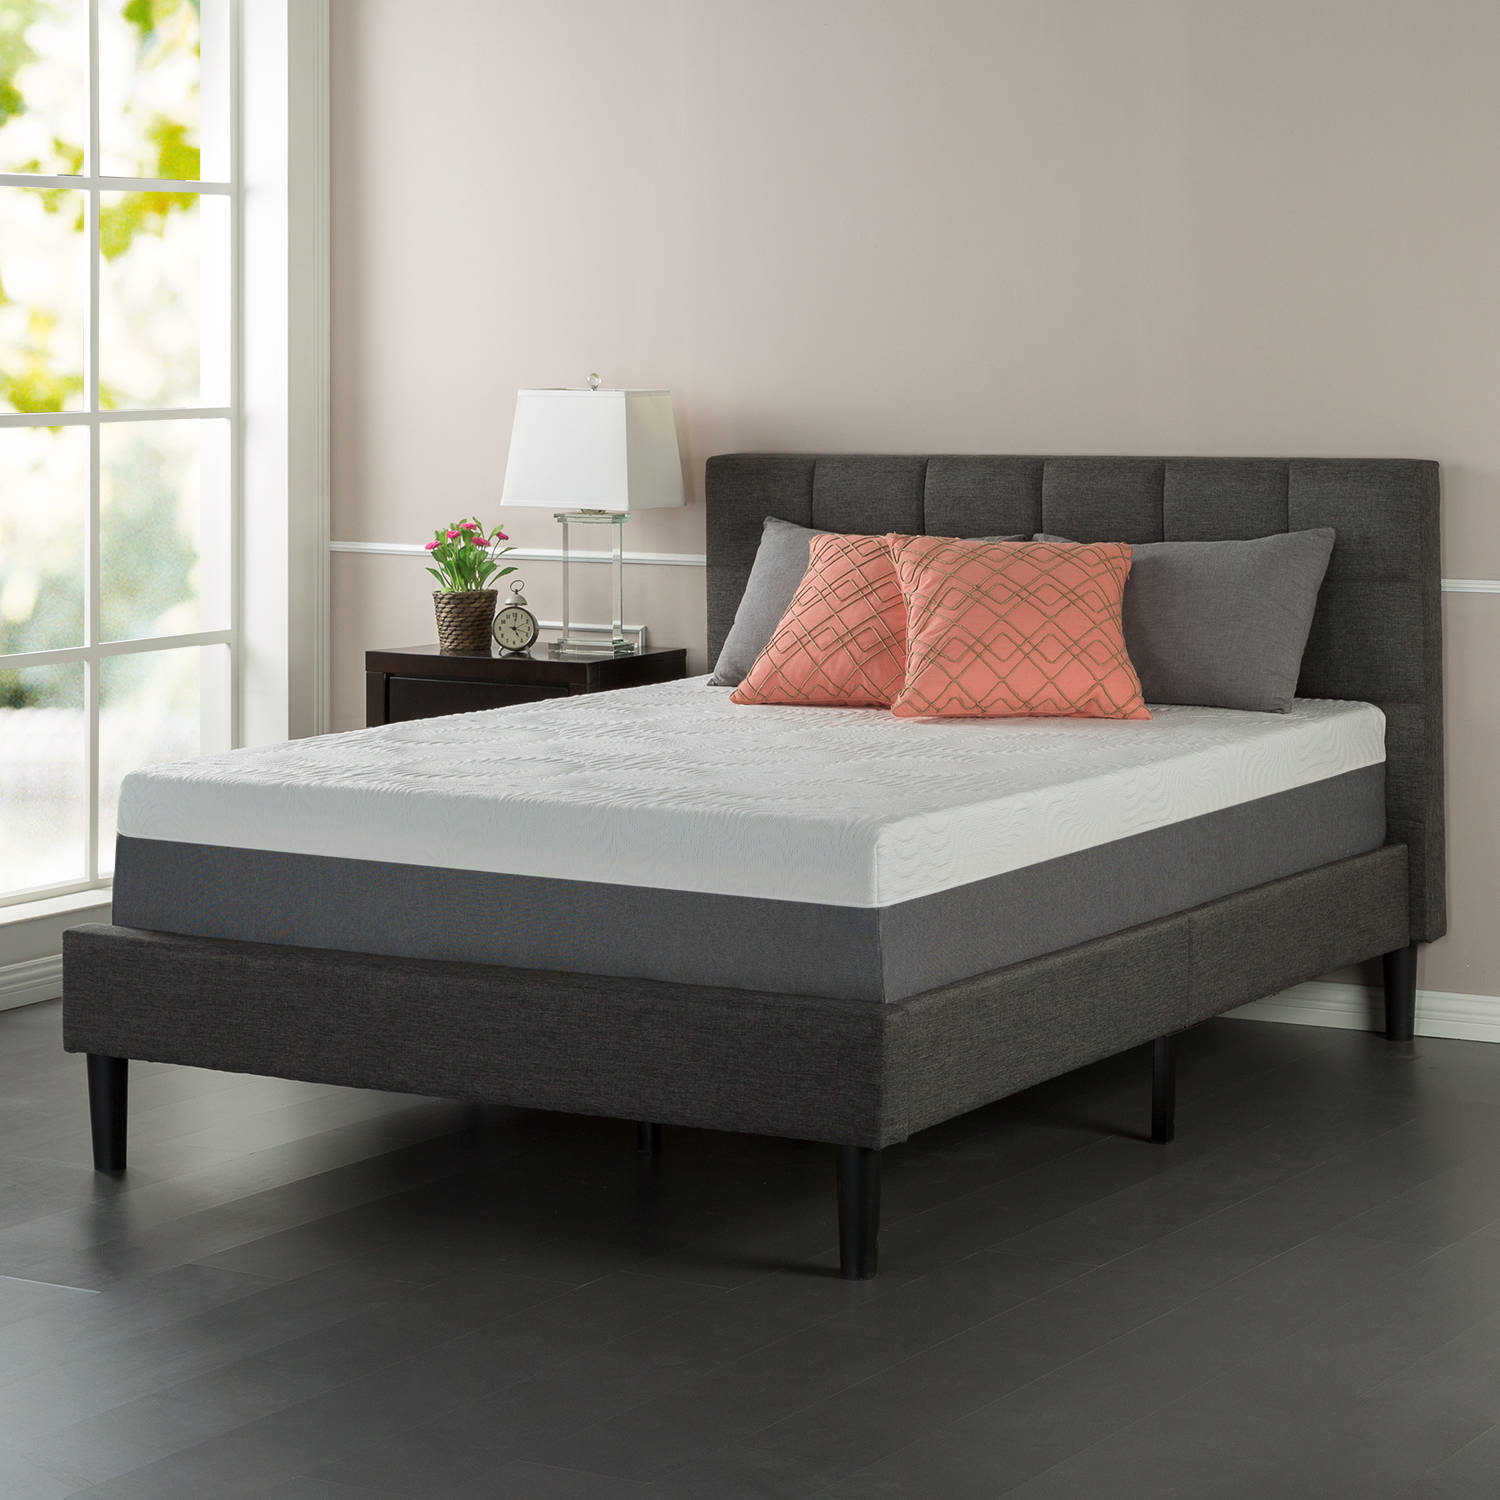 better homes and gardens 12 gel infused memory foam mattress